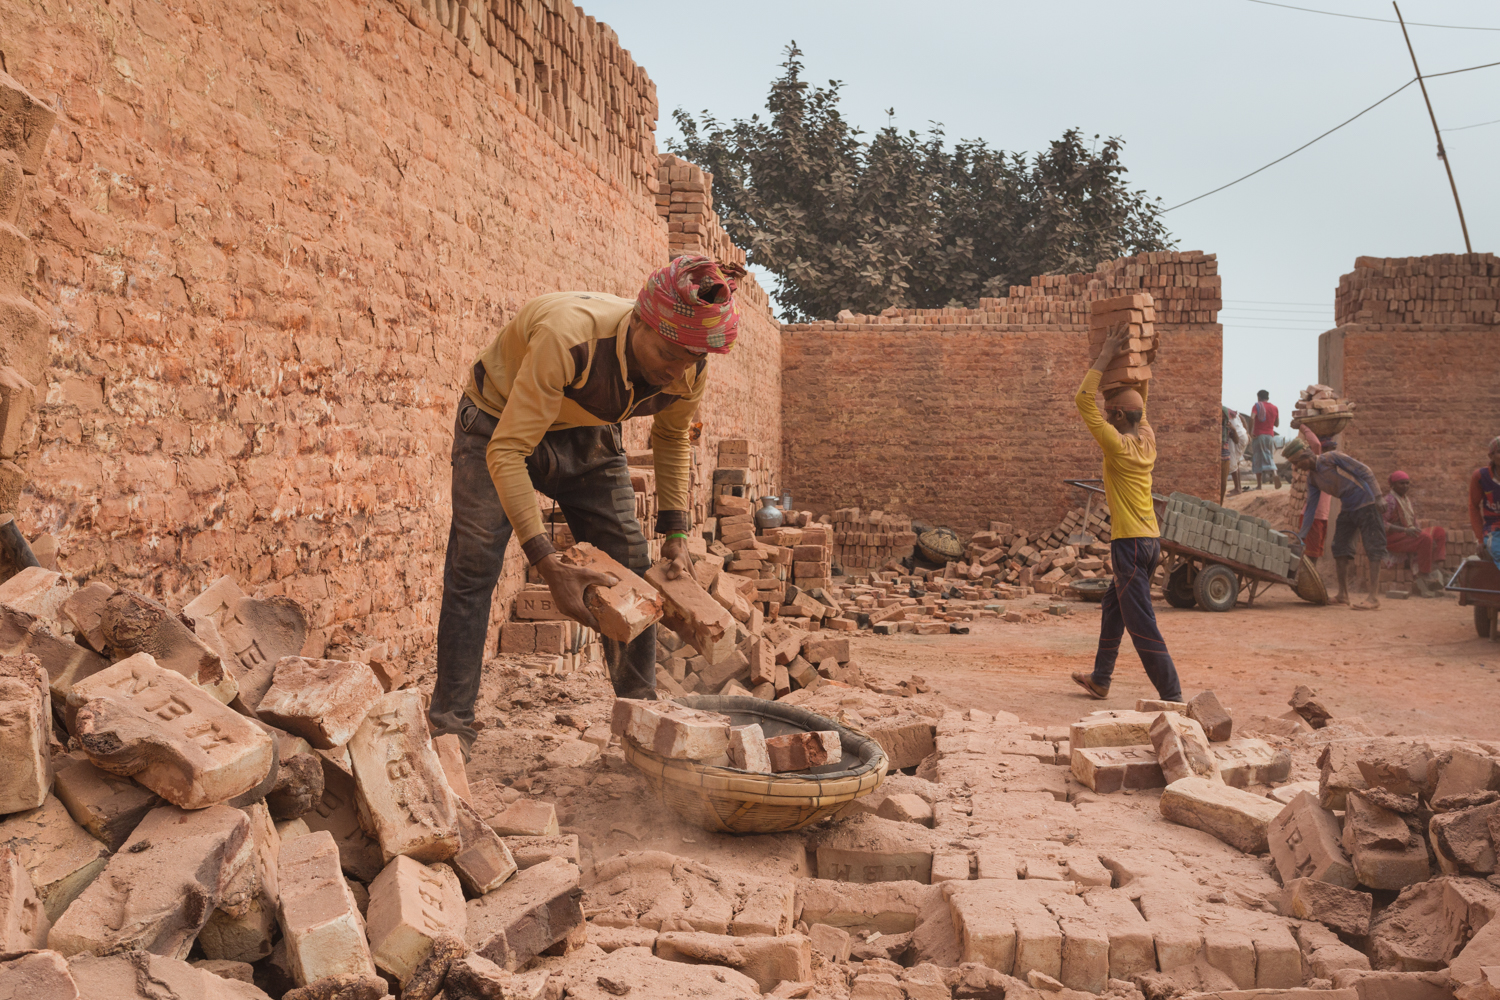 Worker sorting bricks in Chittagong, Bangladesh without protective gear.